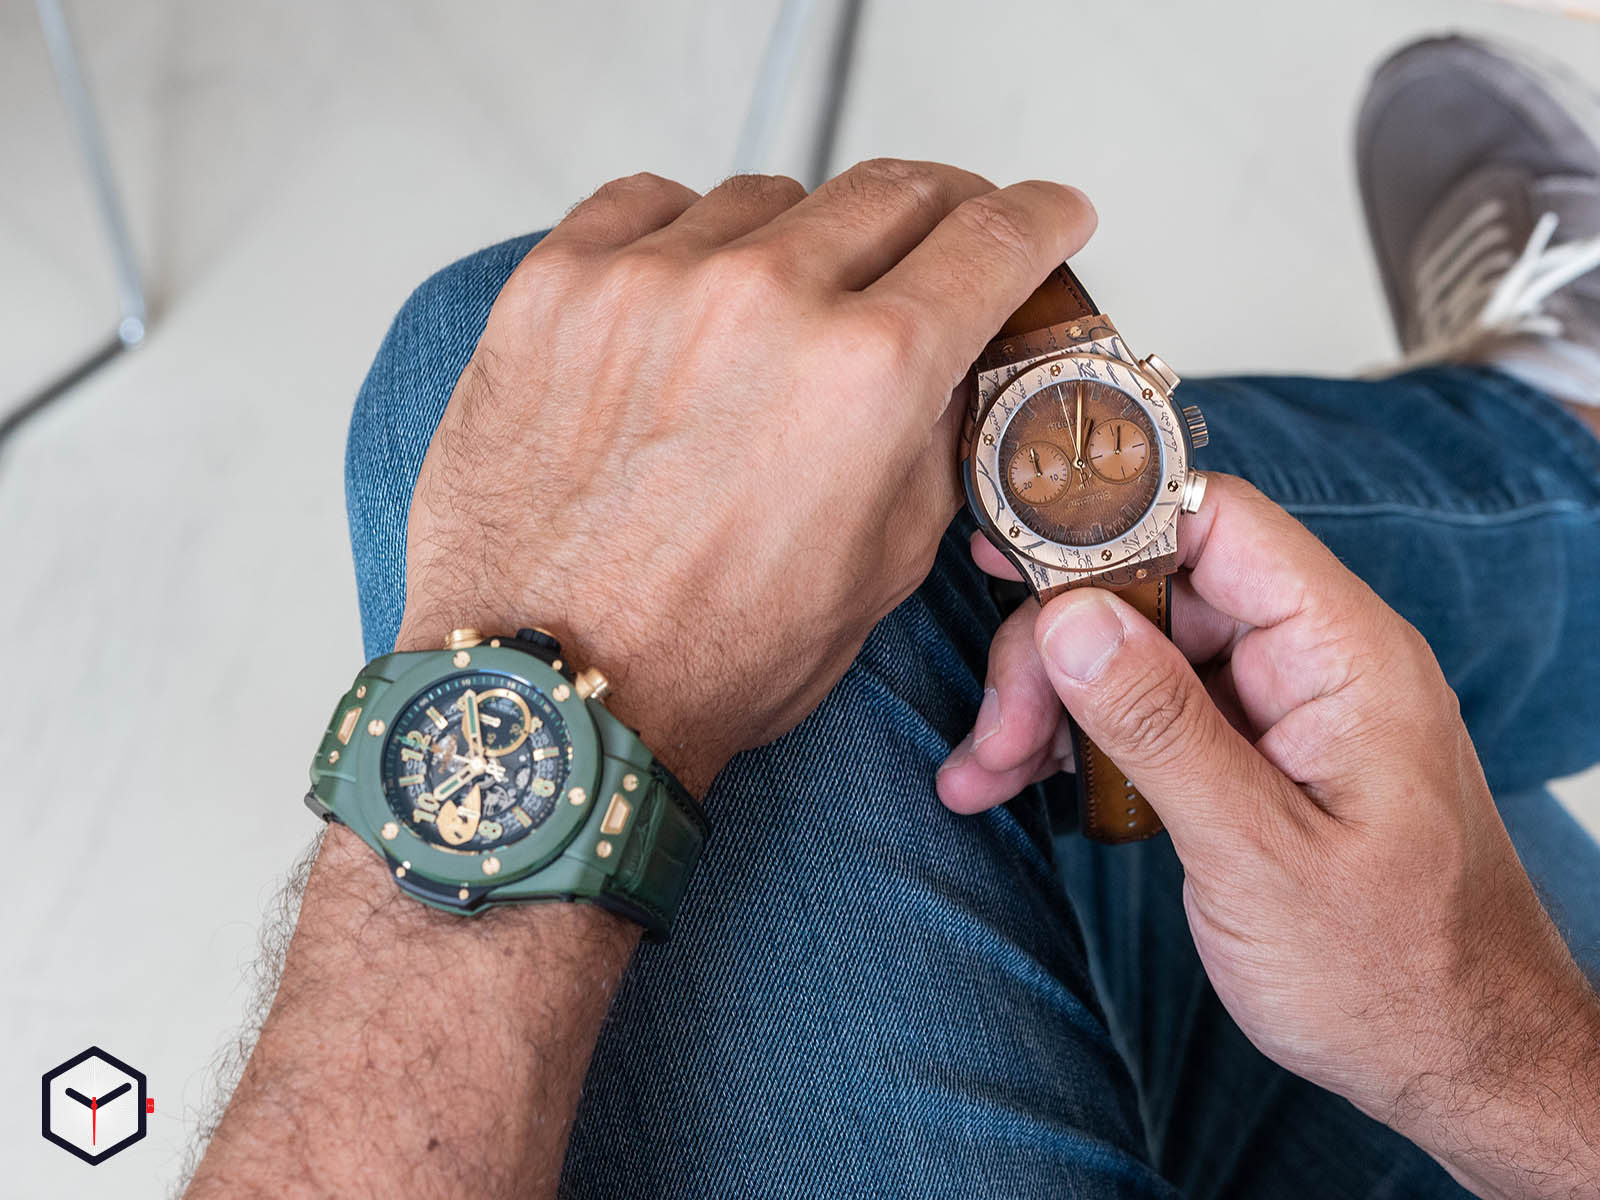 411-gx-1189-lr-wbc19-hublot-big-bang-unico-wbc-10.jpg